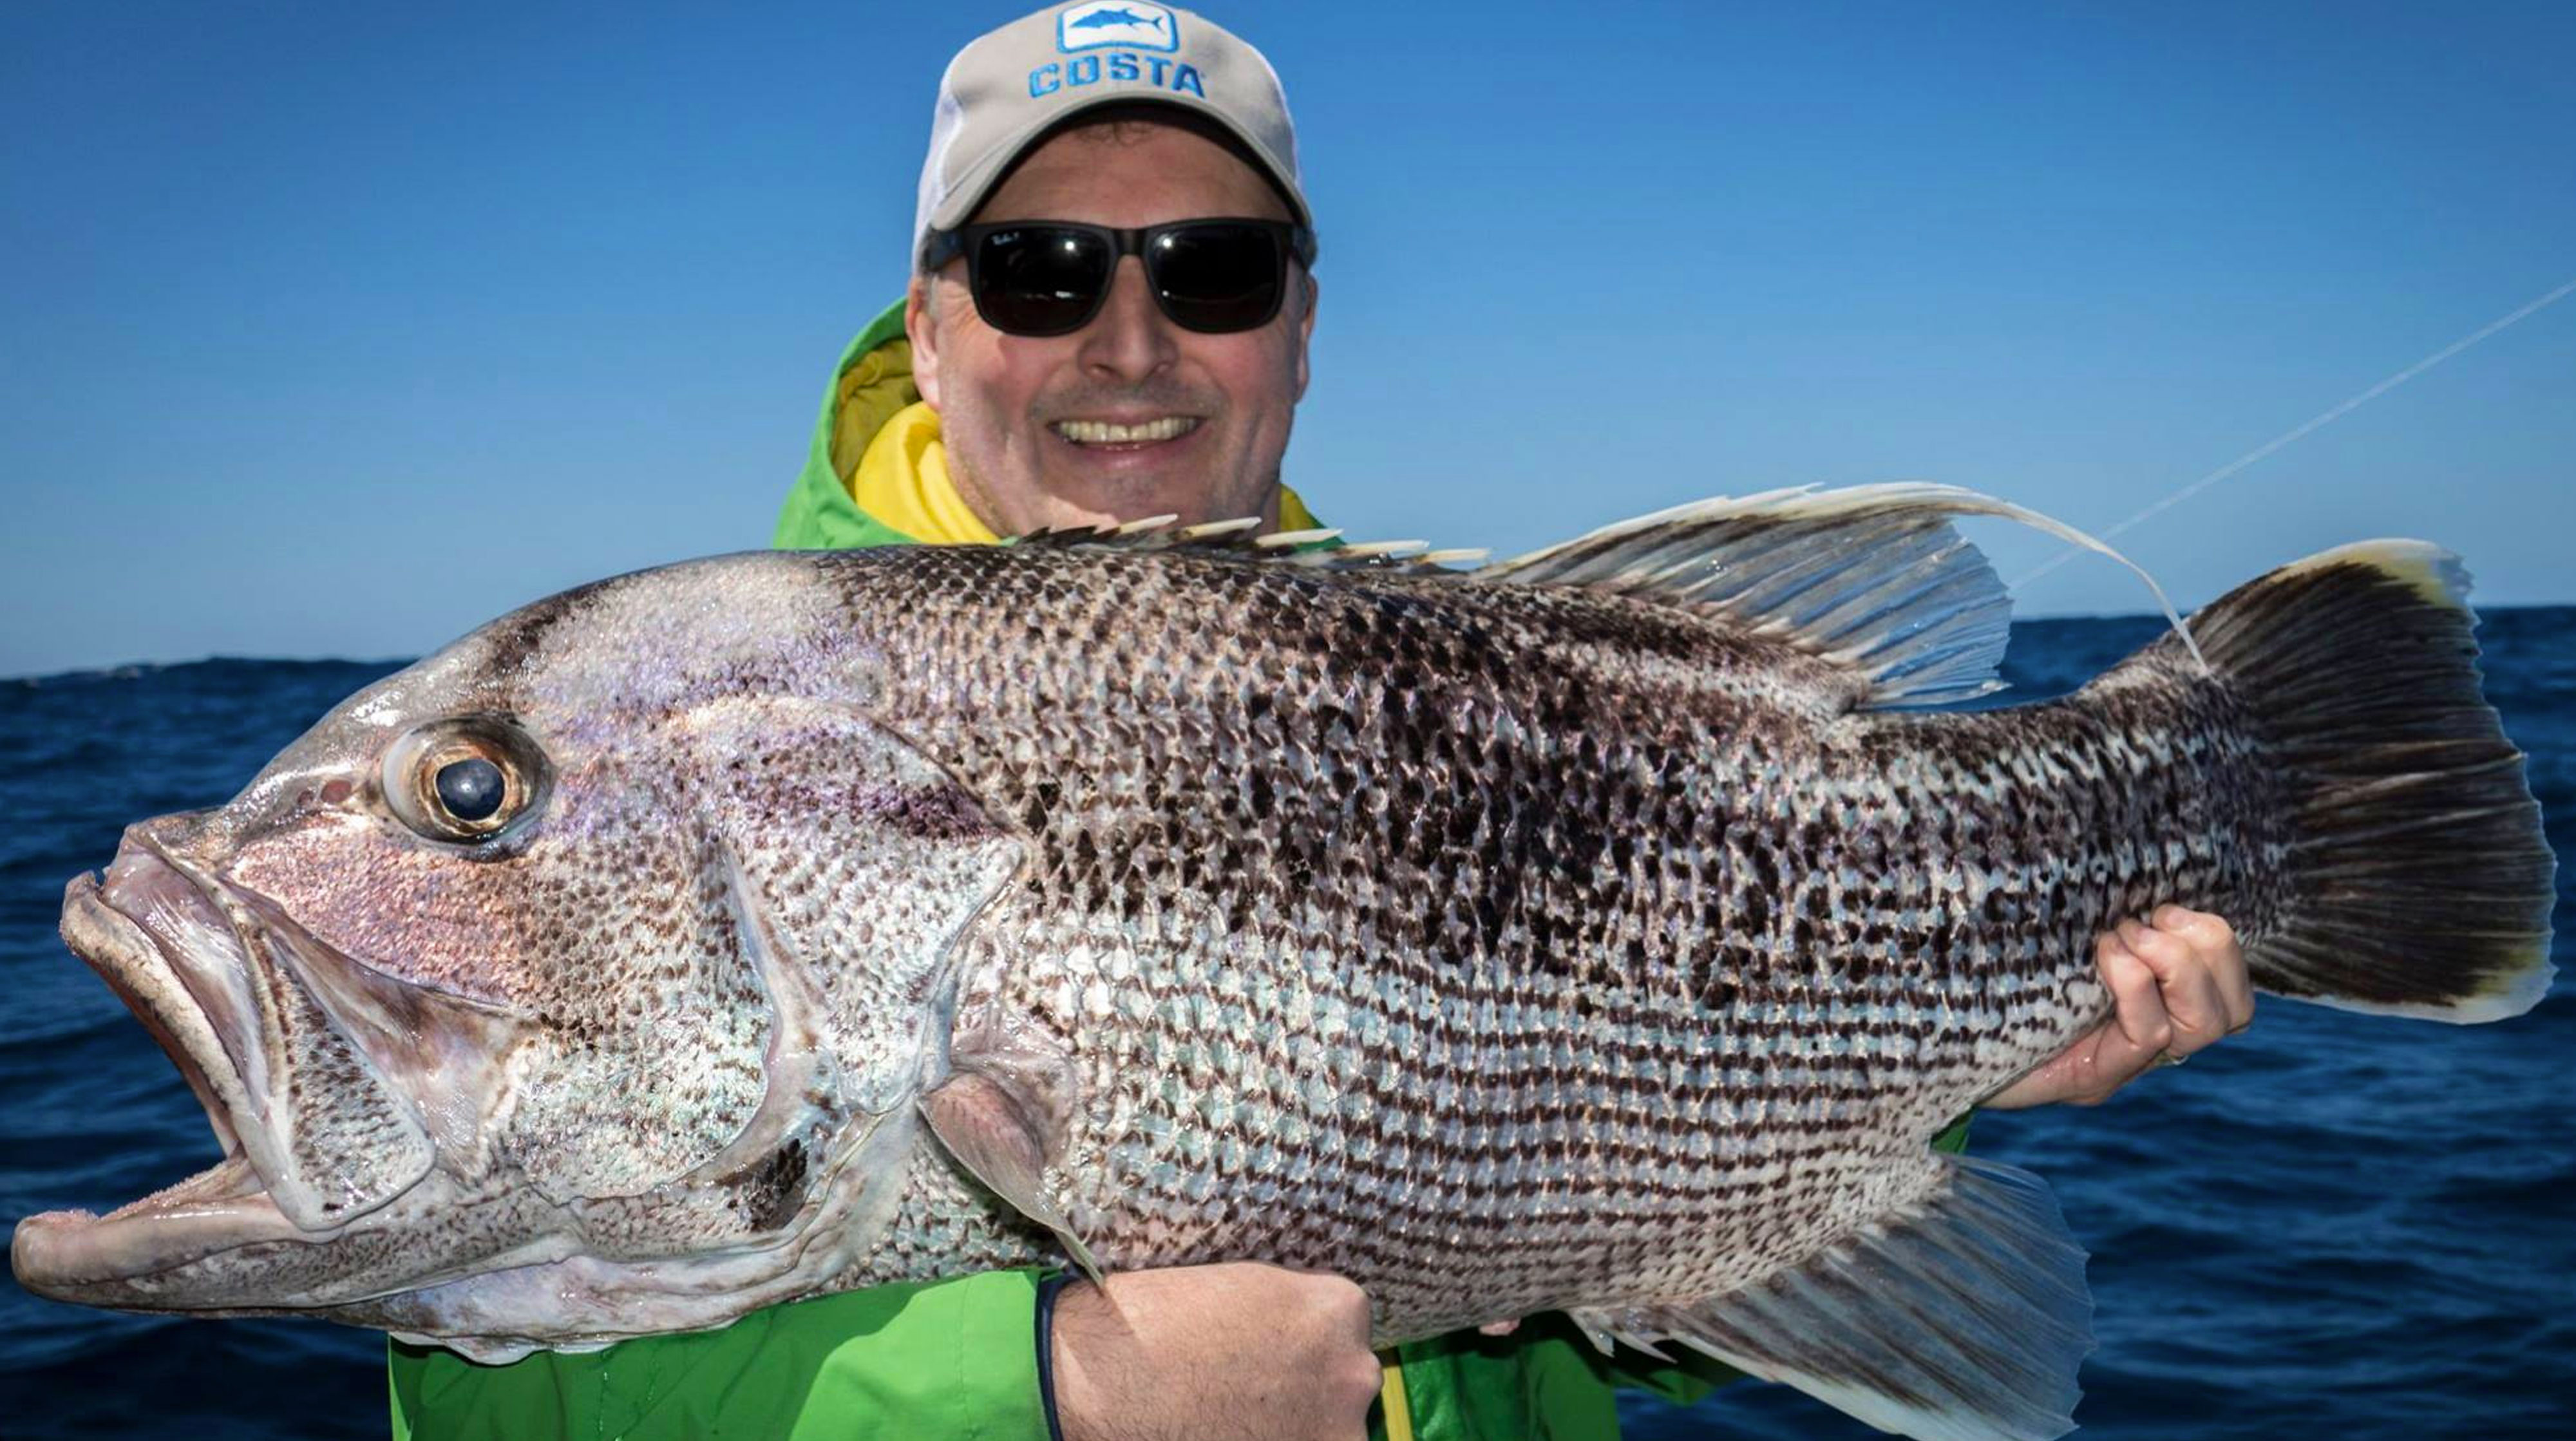 Andy with a 37 pound Dhufish